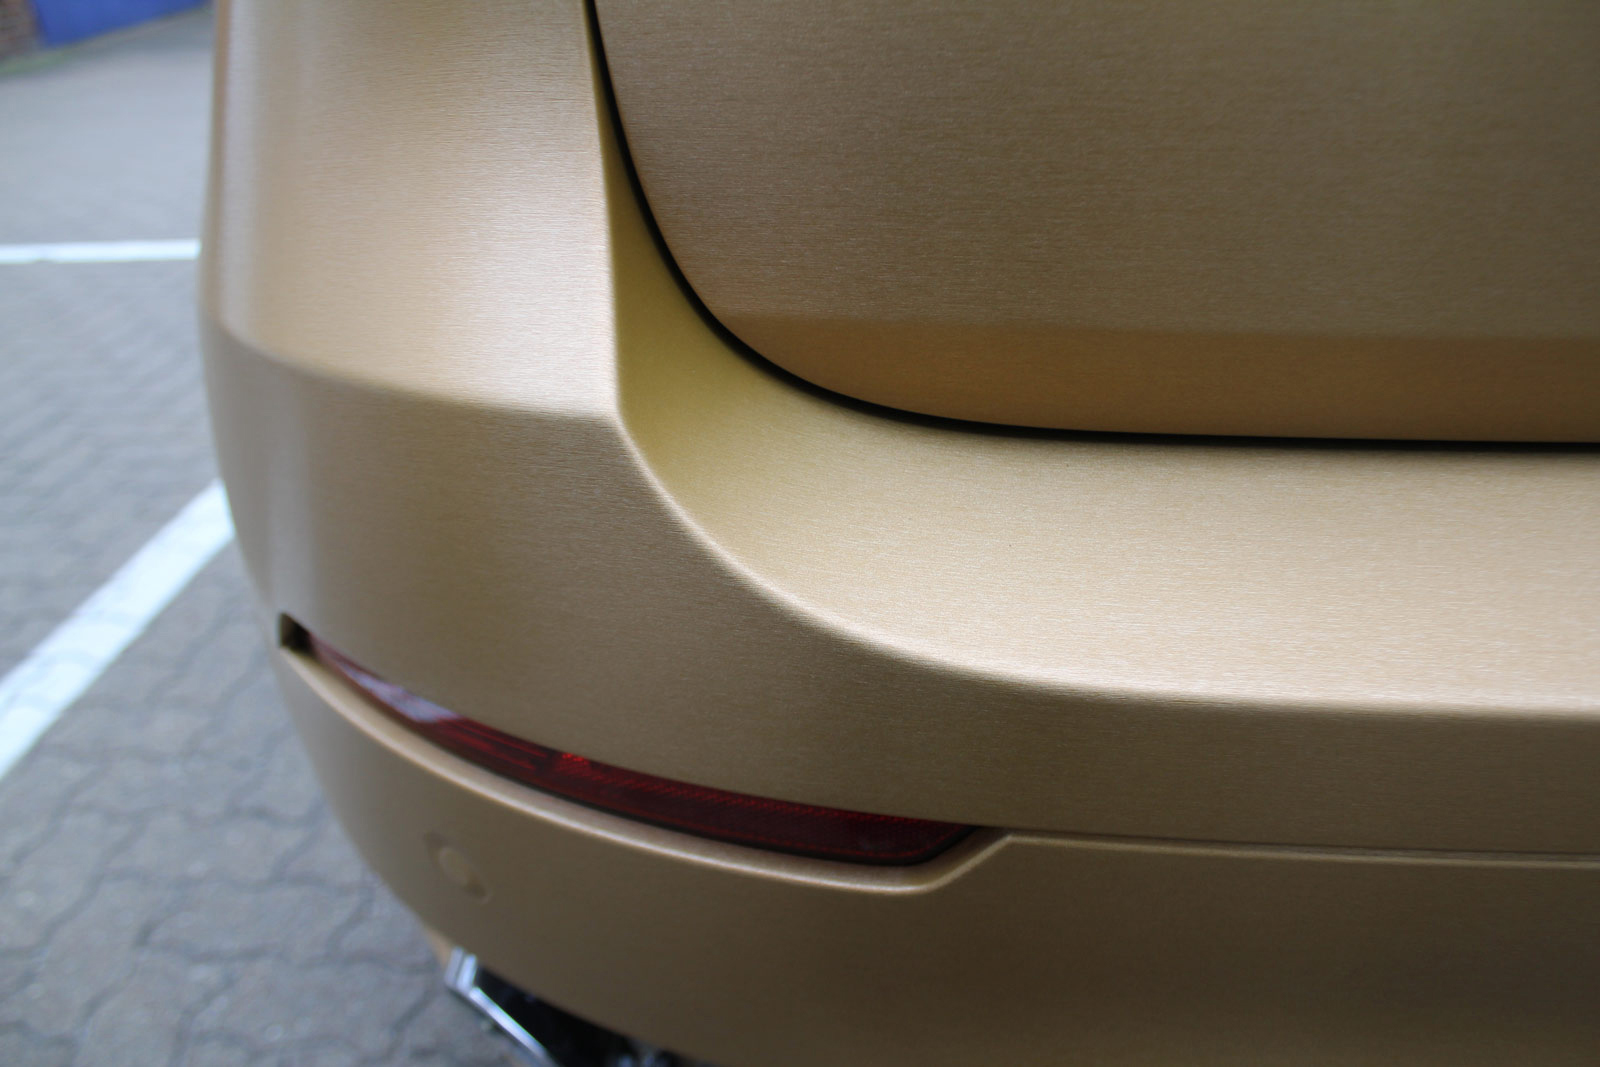 BMW_X6_VERKLEBUNG_BRUSHED_GOLD_70